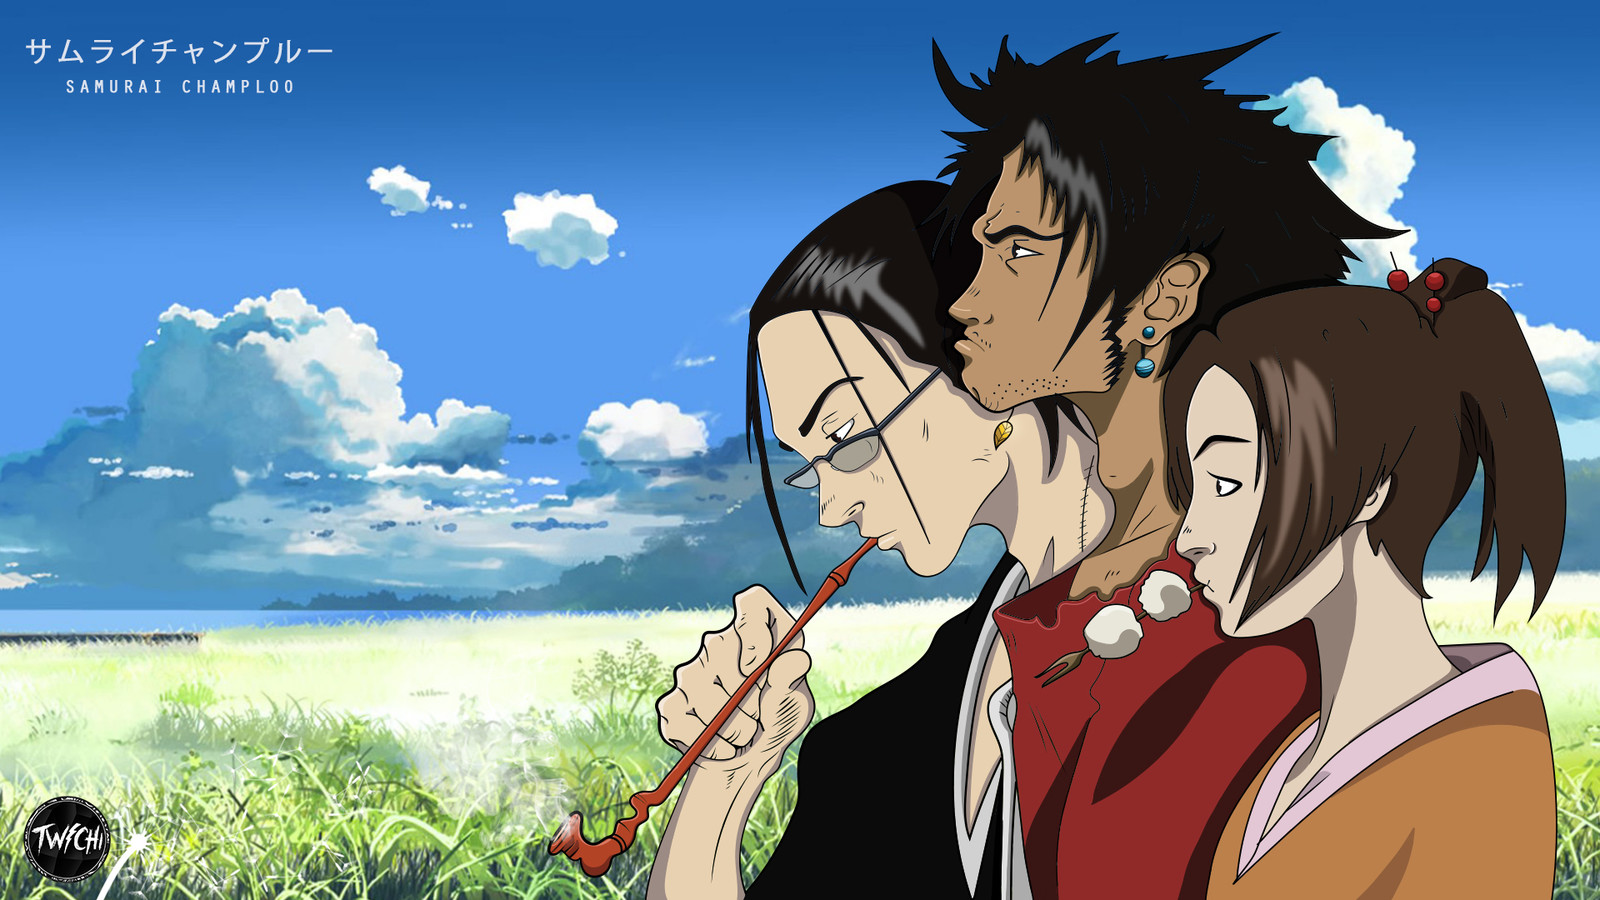 Samurai Champloo Anime Illustration